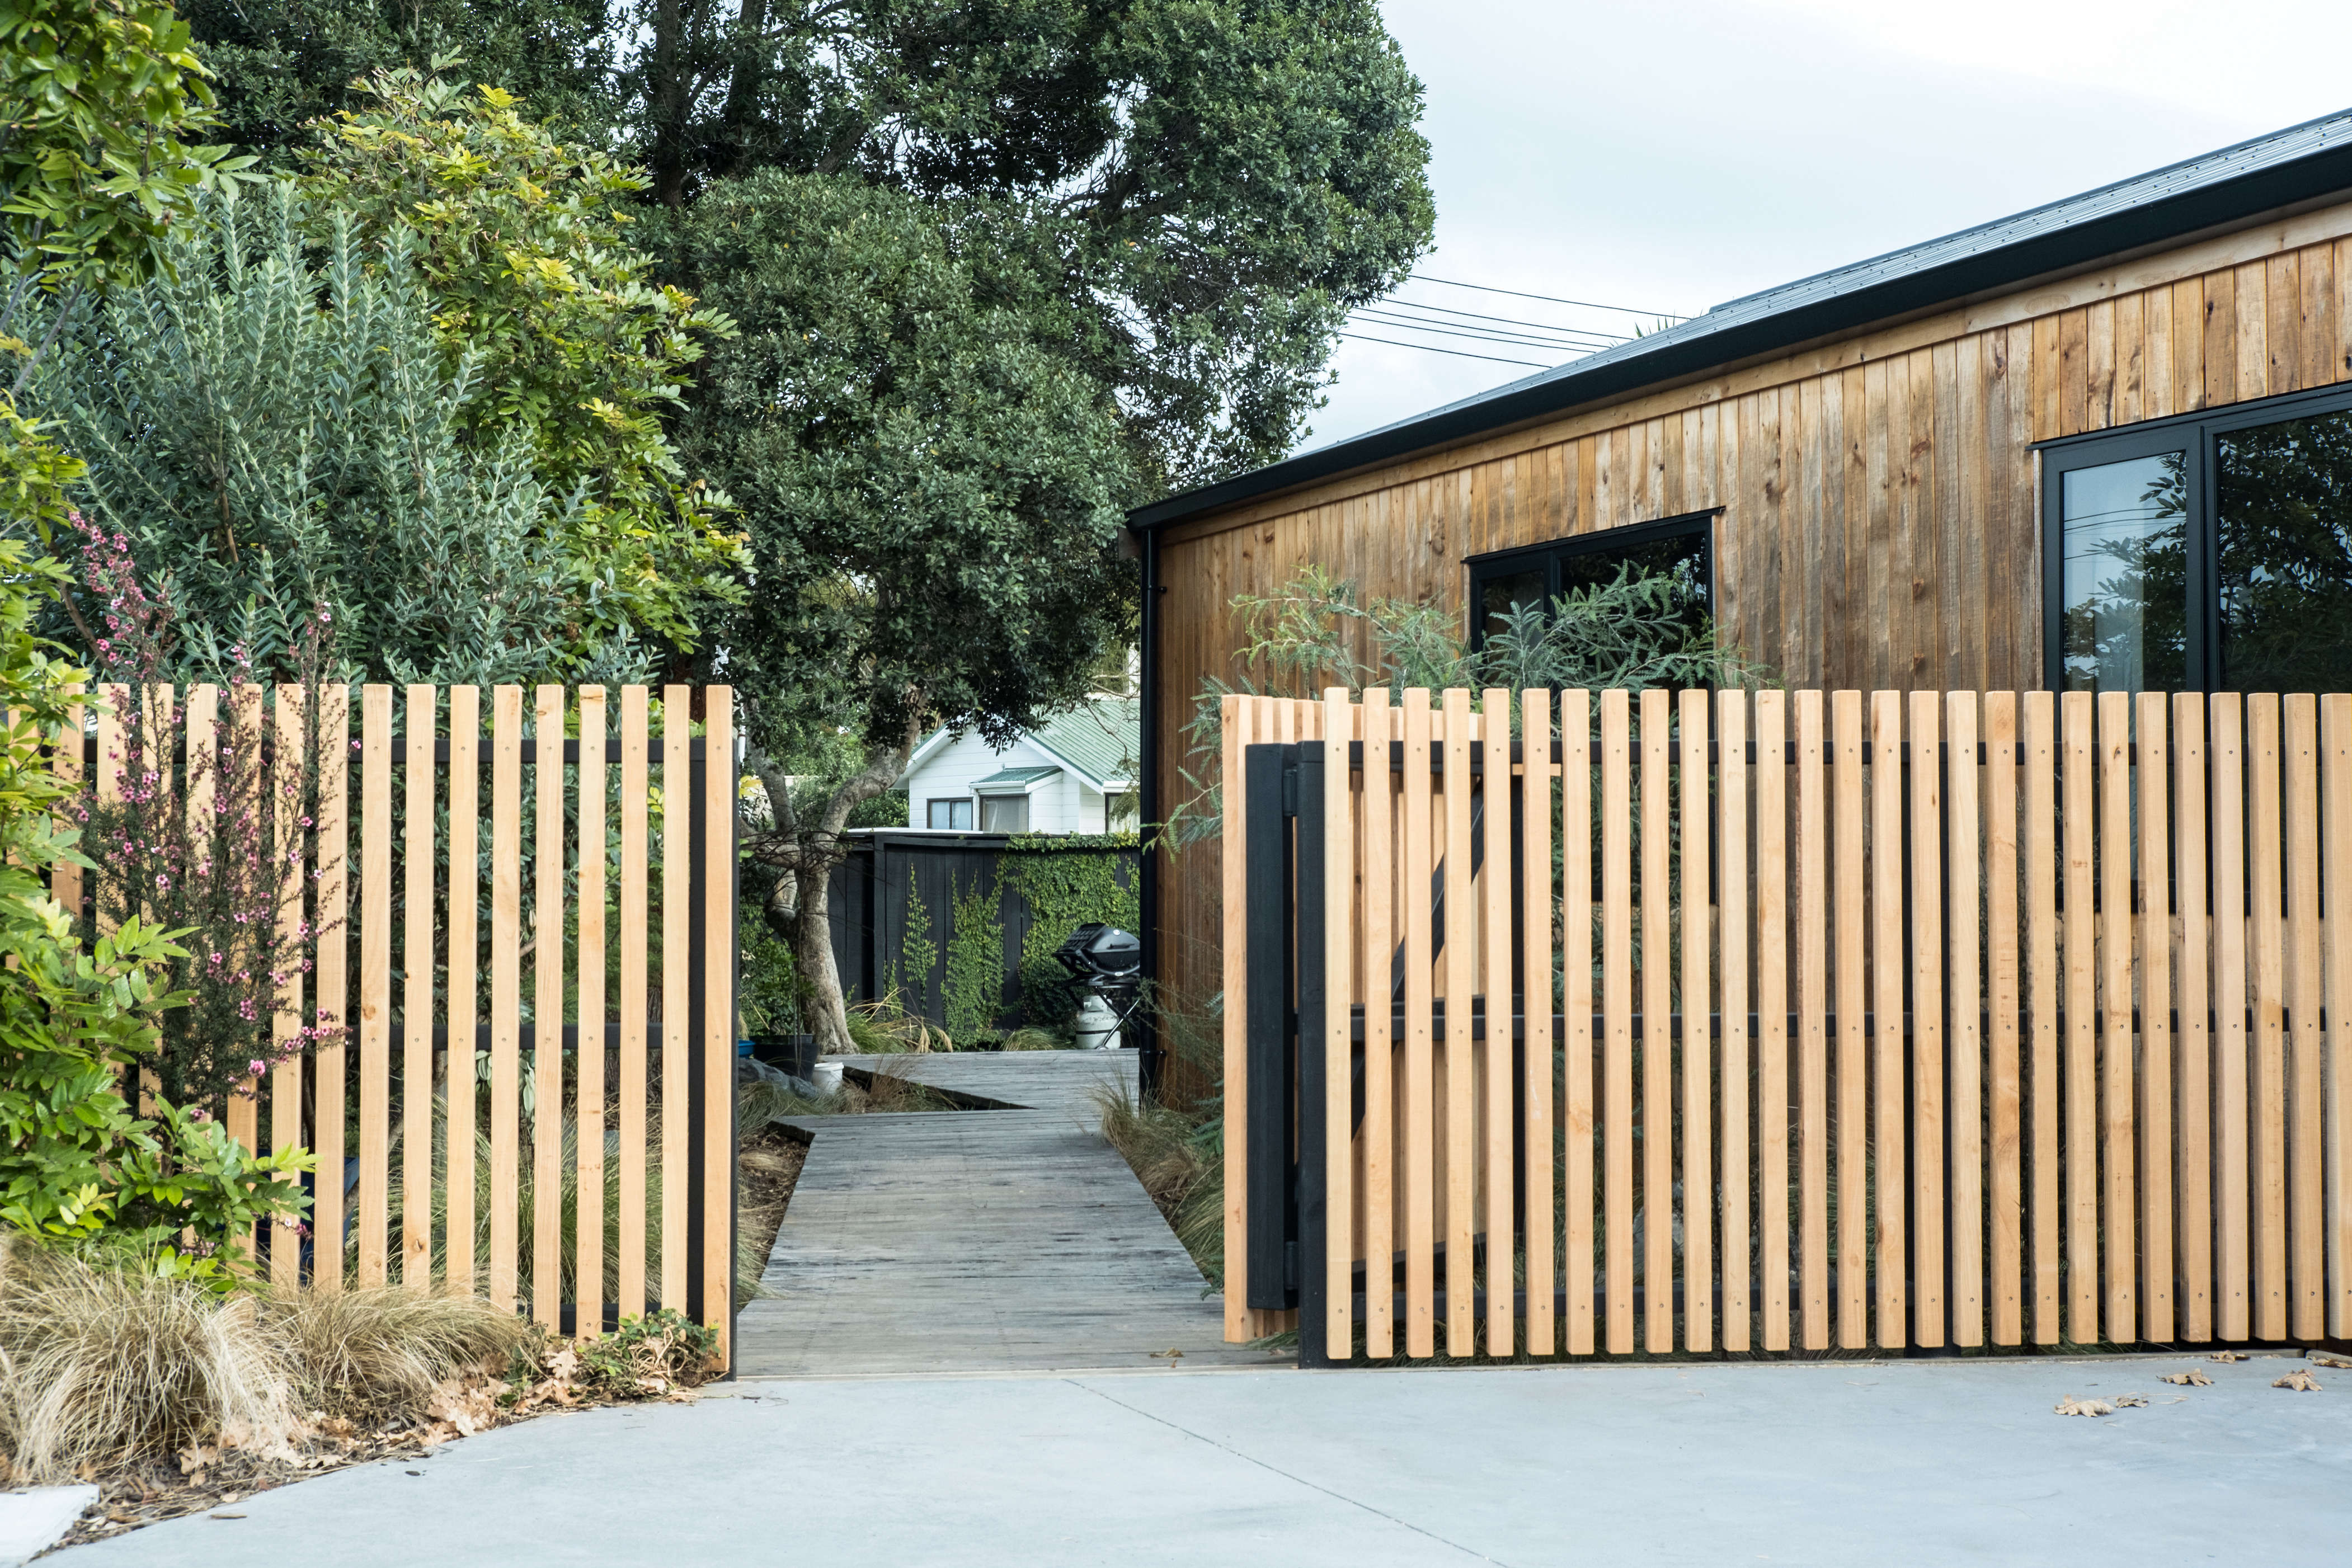 George and Willy's Urban Cabin House Remodel—in the New Zealand Suburbs